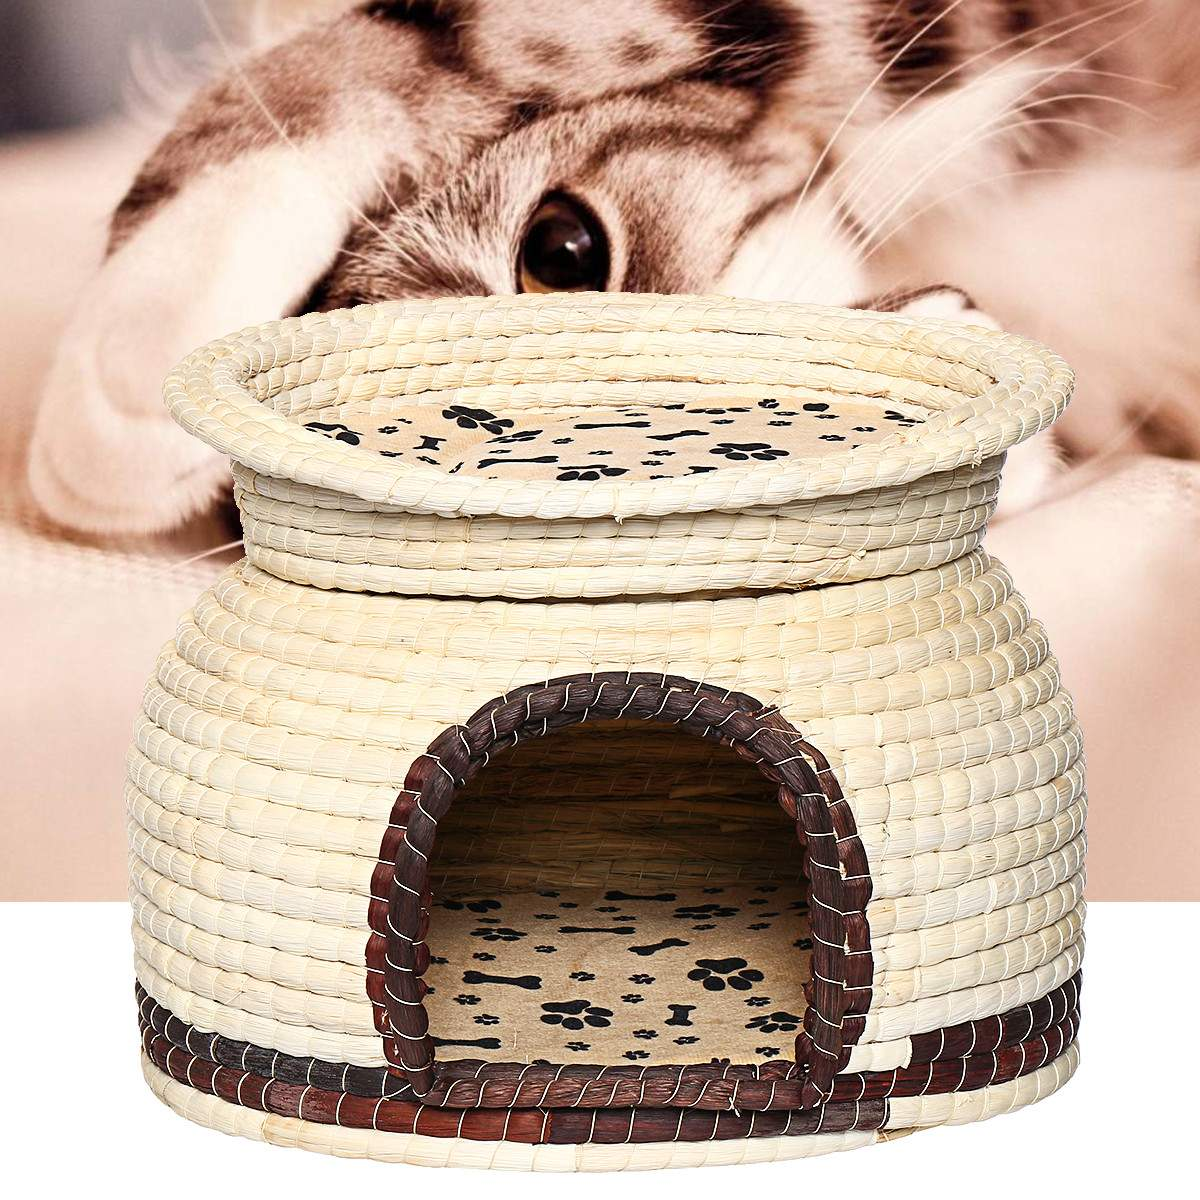 dual-use-pet-dog-cat-soft-bed-house-kennel-breathable-2-layers-puppy-cushion-basket-cage-pet-supplies-cat-accessories-44x33cm